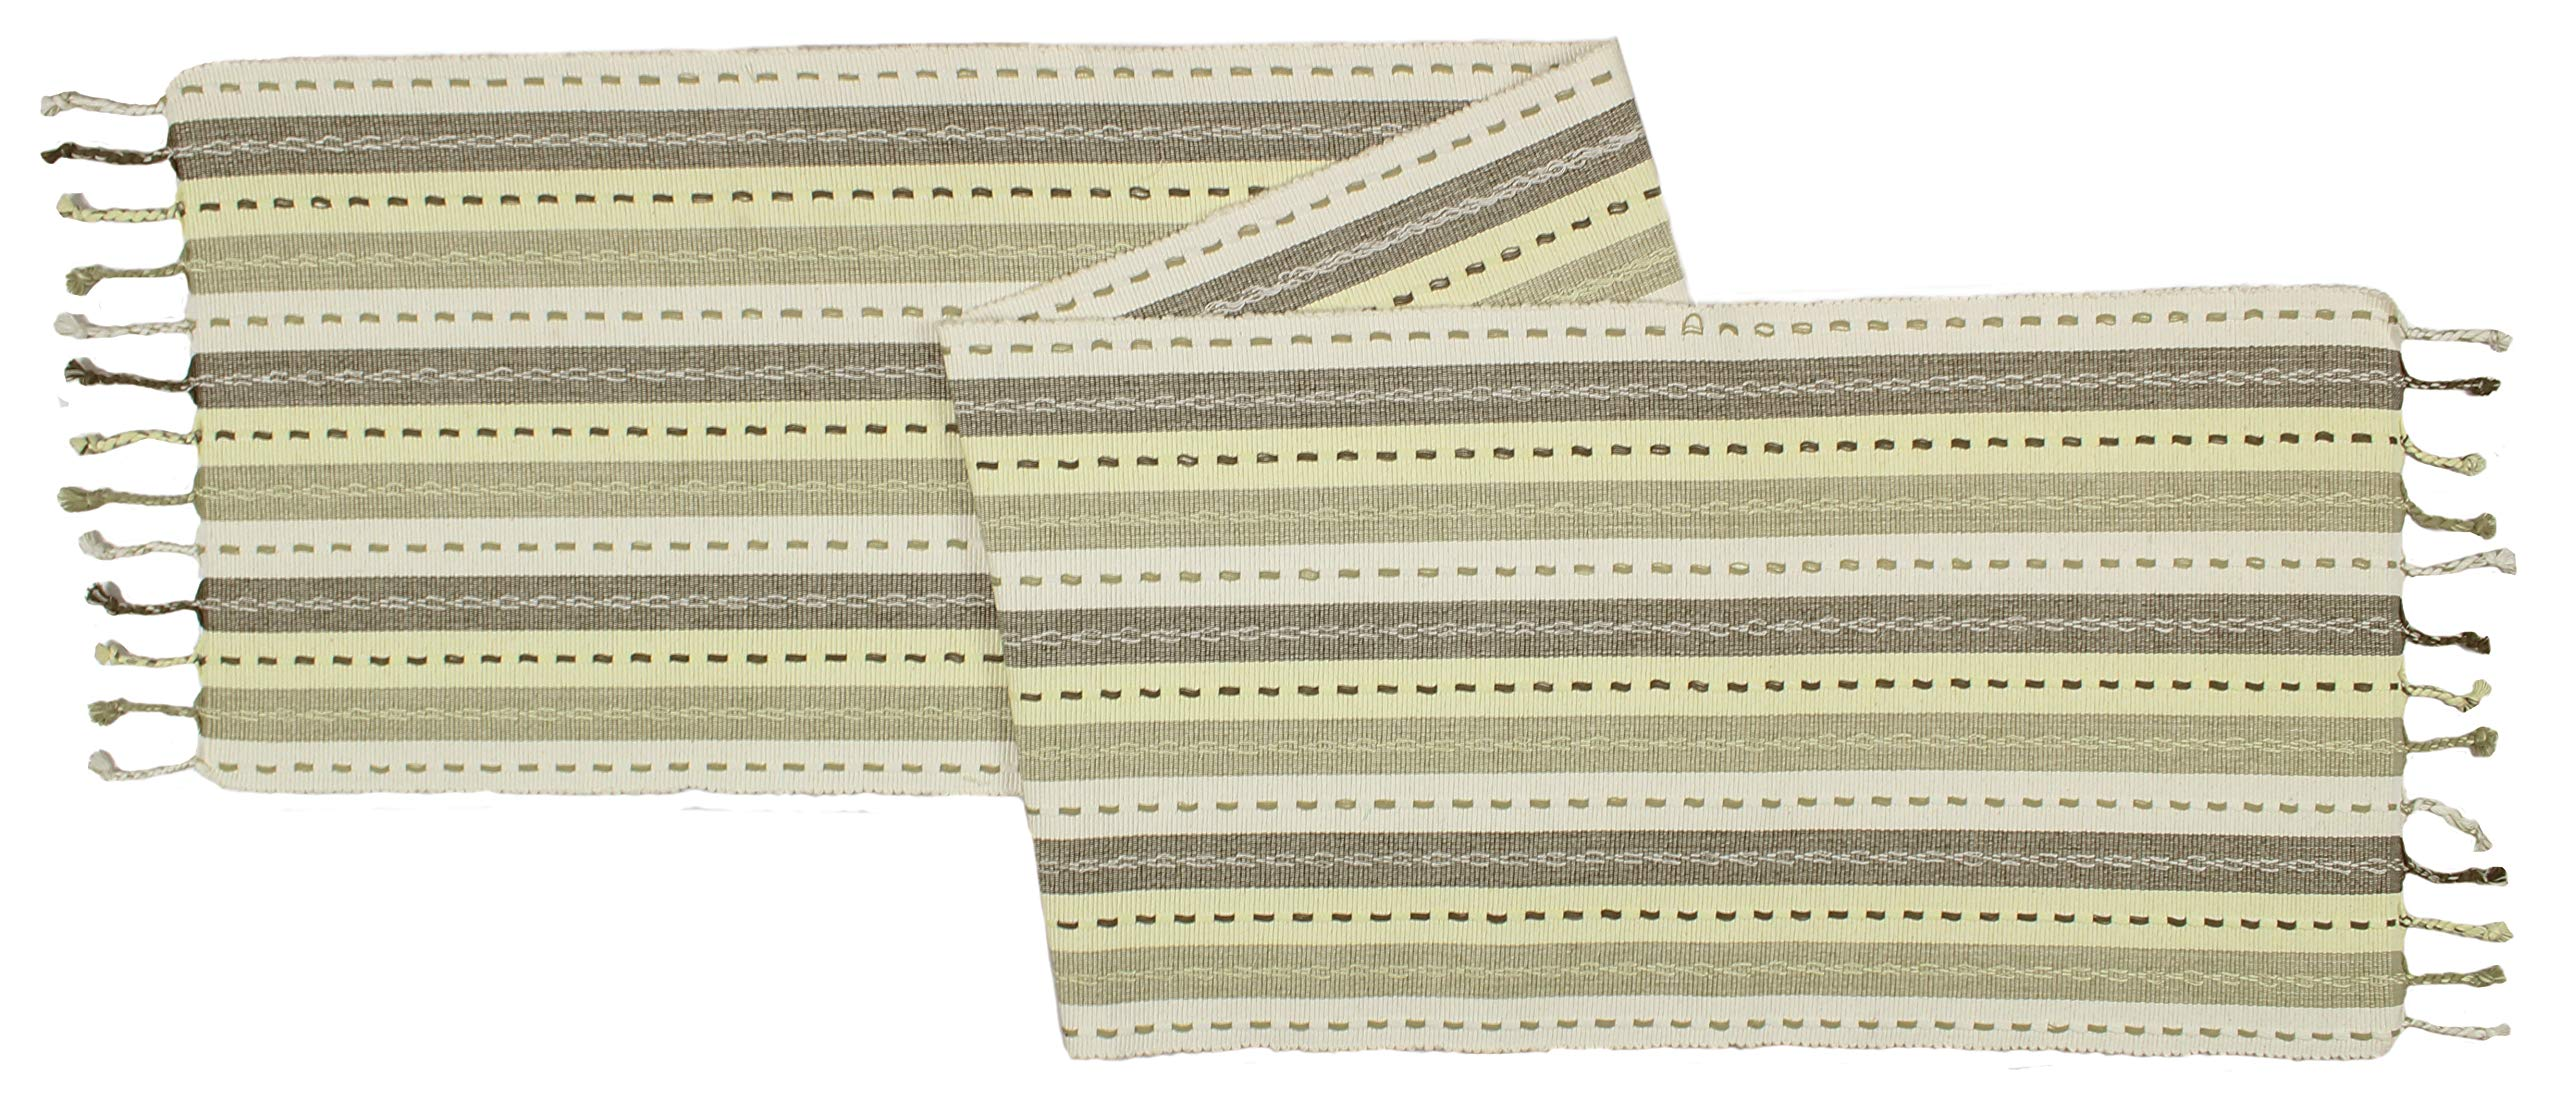 Cotton Craft - Salsa Stripe Hand Knotted Fringe Table Runner - 14x72 - Natural Light Olive - 100% Cotton - Hand Woven by Skilled artisans - Unique Hand Knotted Decorative Fringe